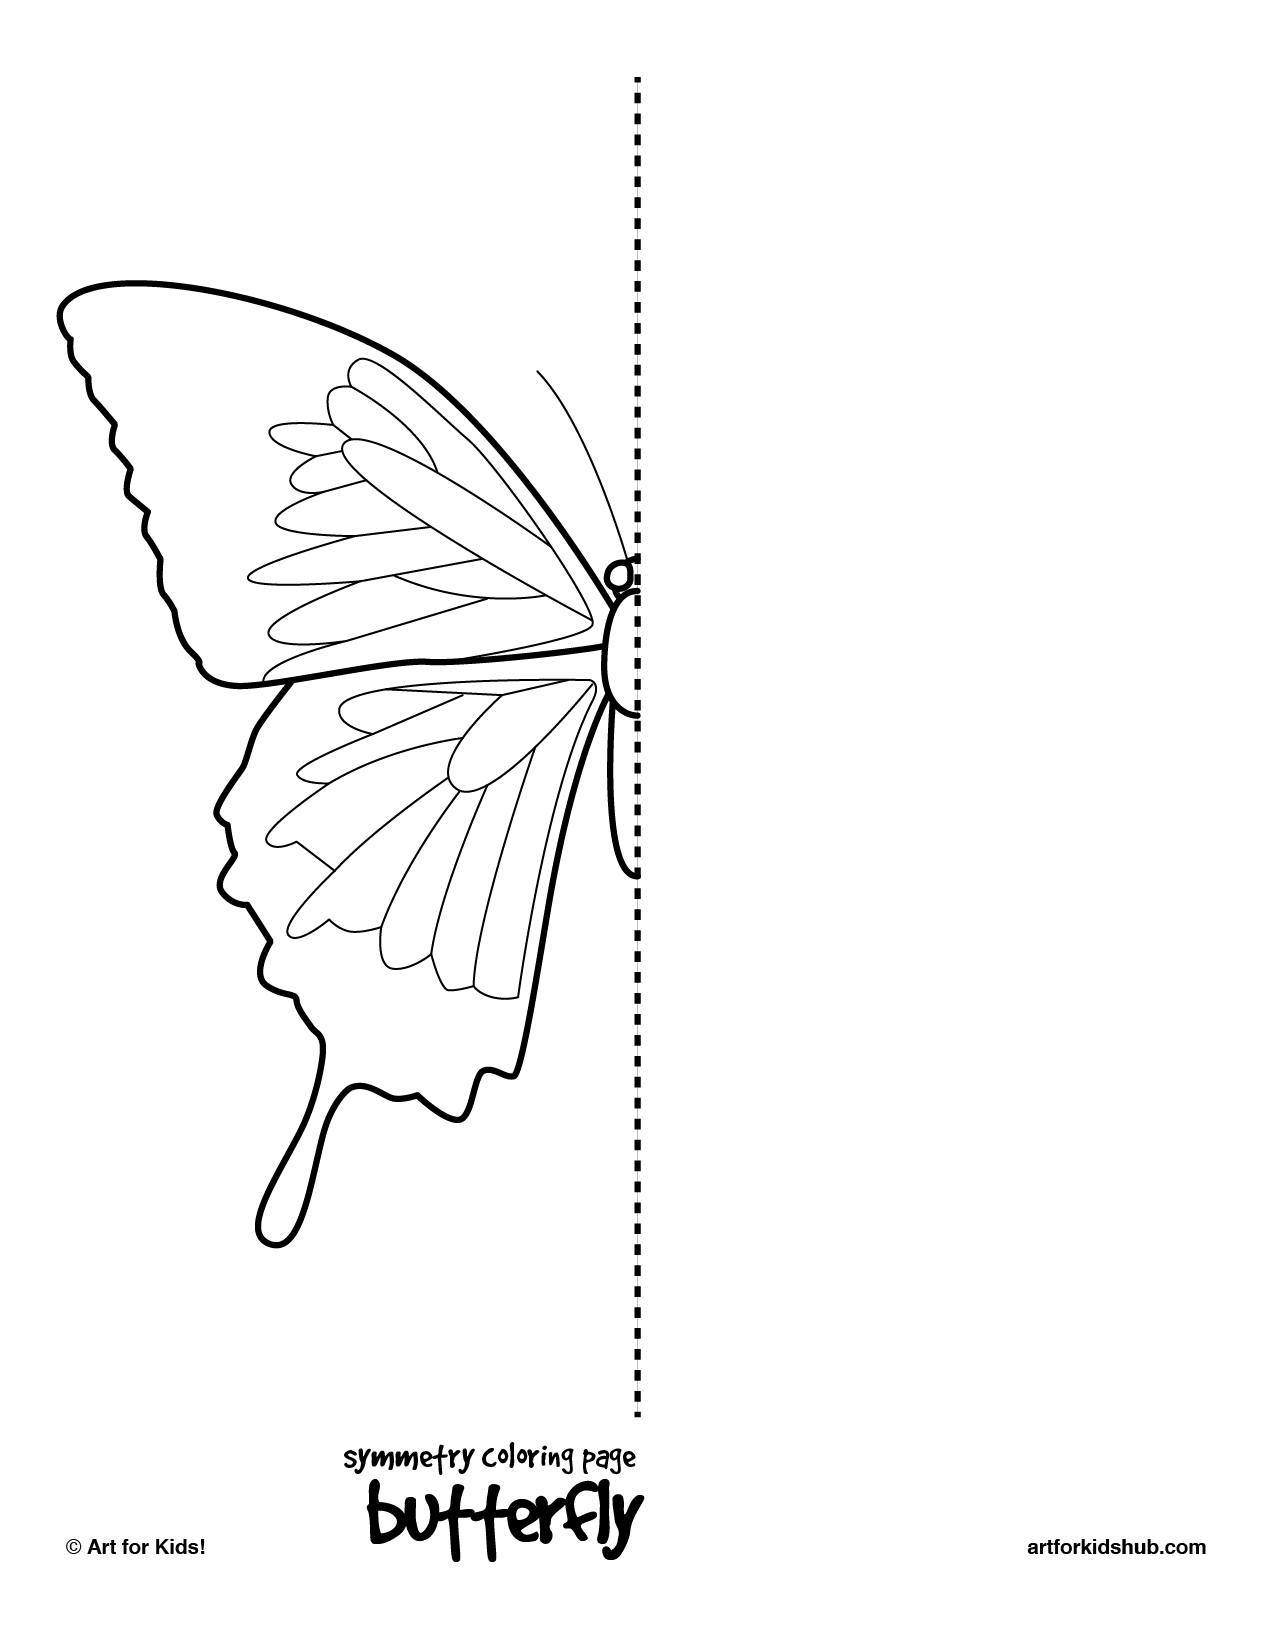 s line of symmetry coloring pages - photo #26